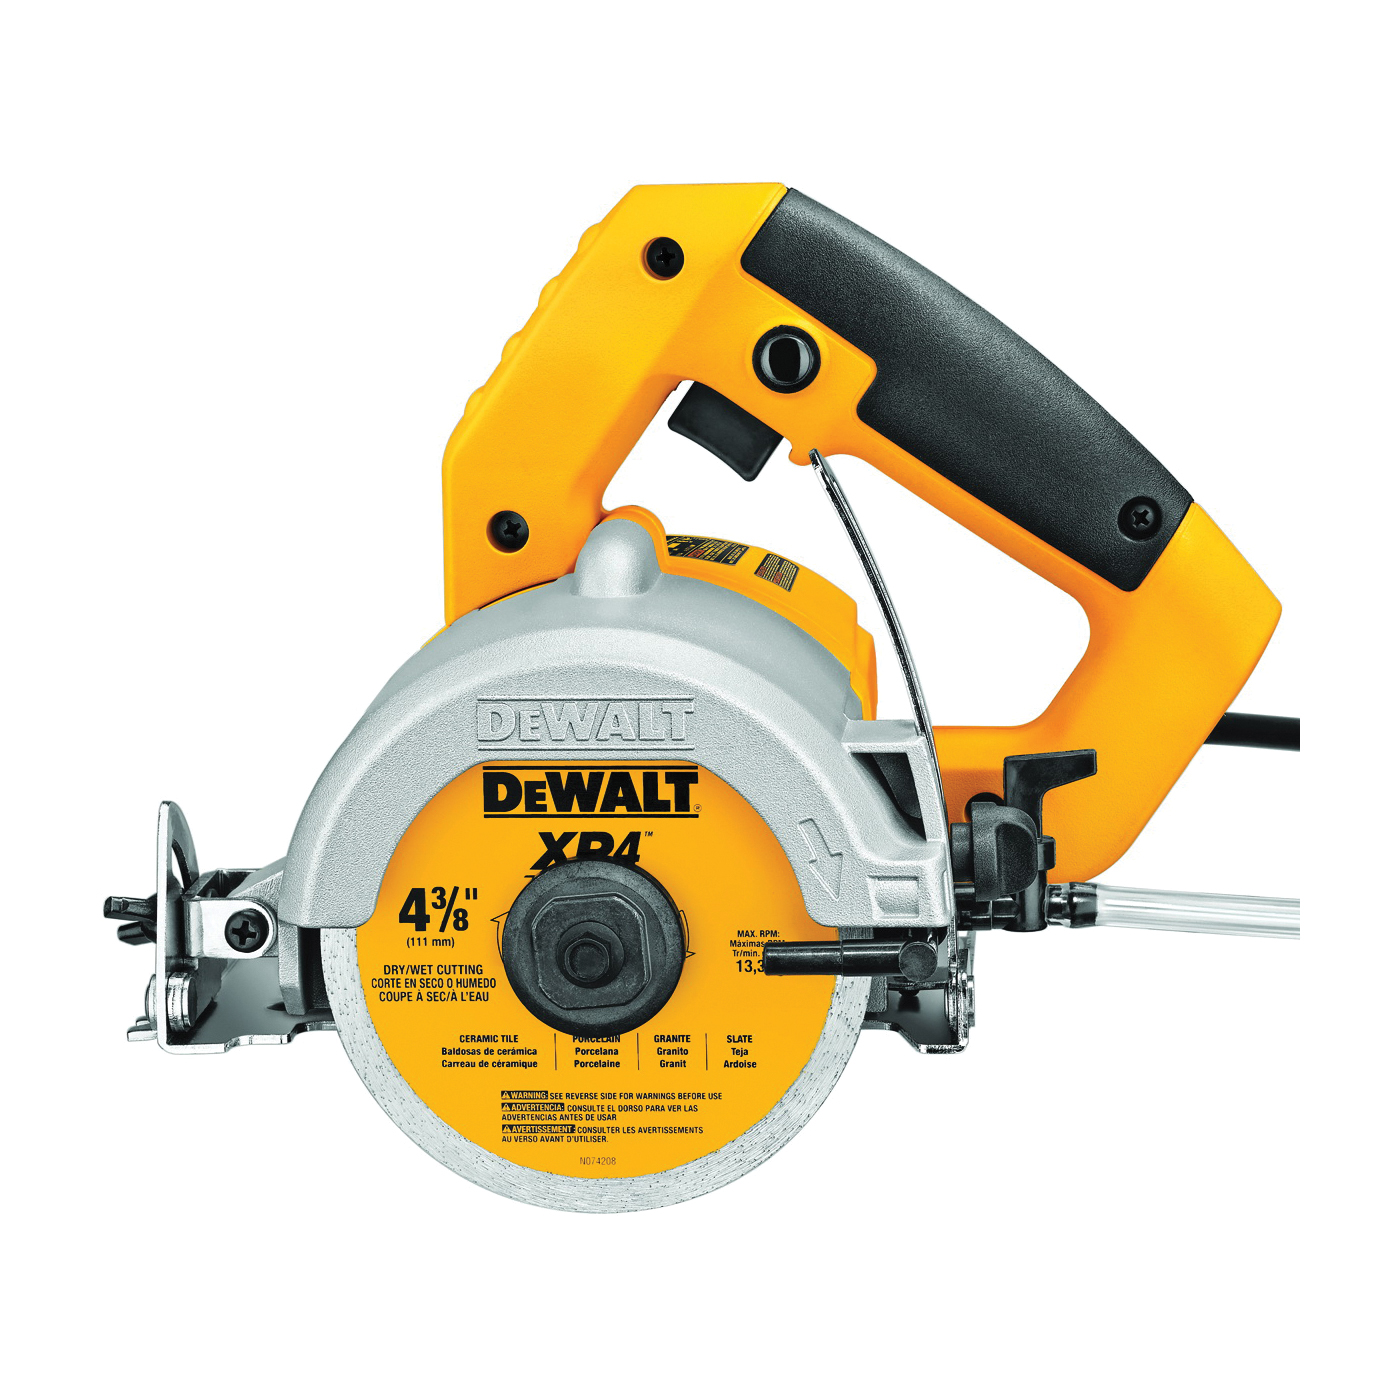 Picture of DeWALT DWC860W Tile Saw, 4-3/8 in Blade, 1-3/8 in at 90 deg, 3-1/8 in Max D Cutting